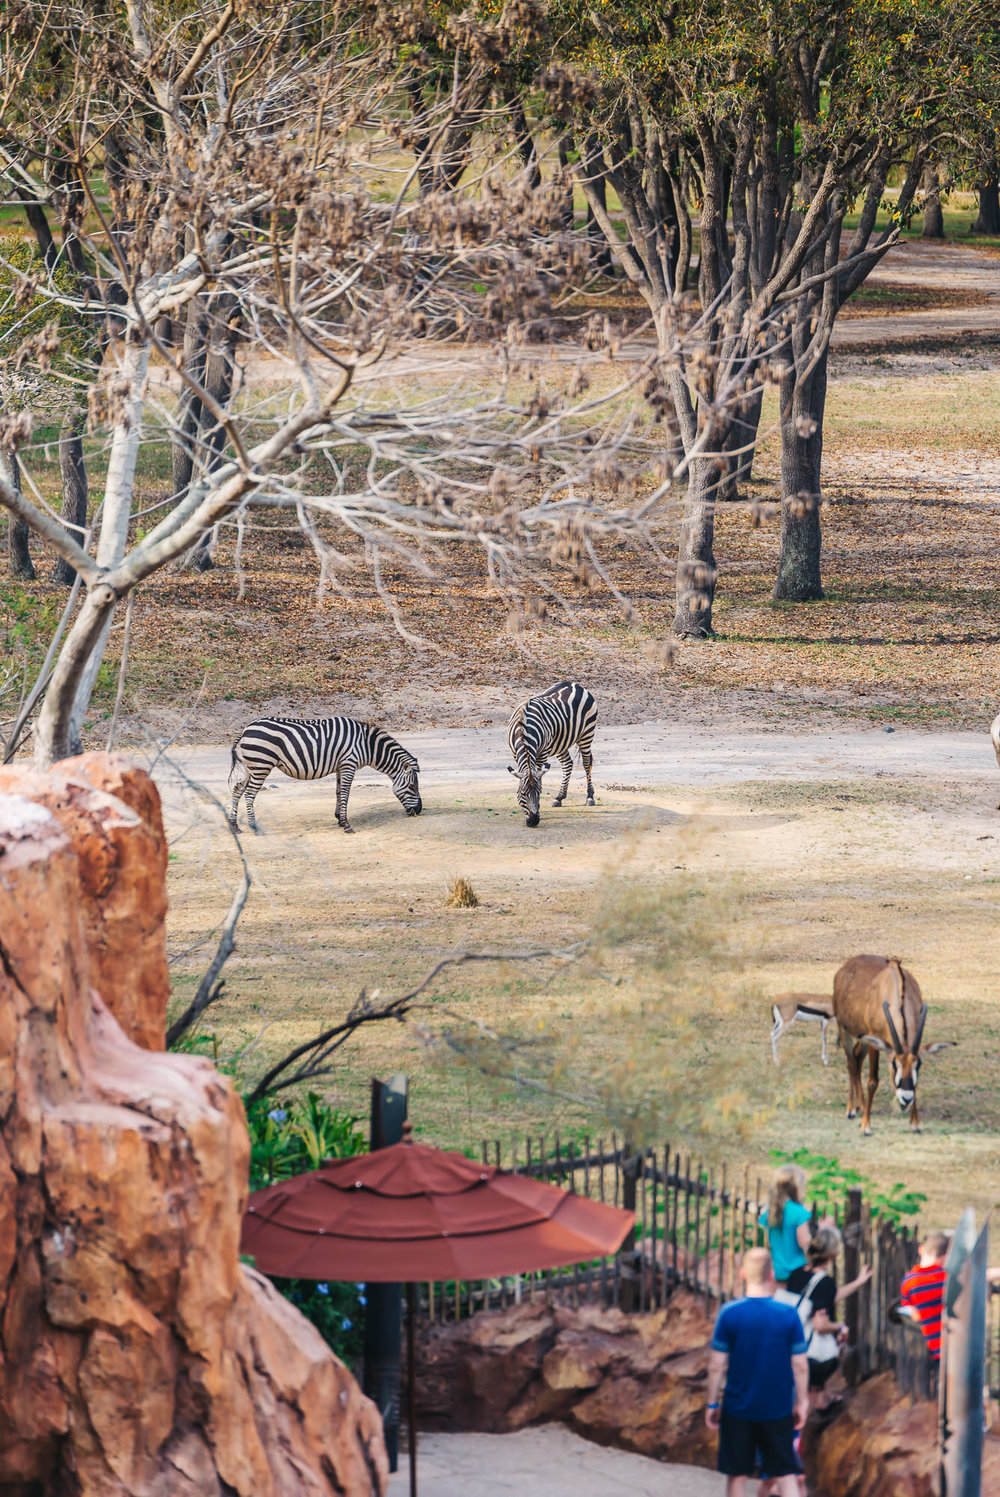 The Disney Conservation fund (DCF) helps protect zebras